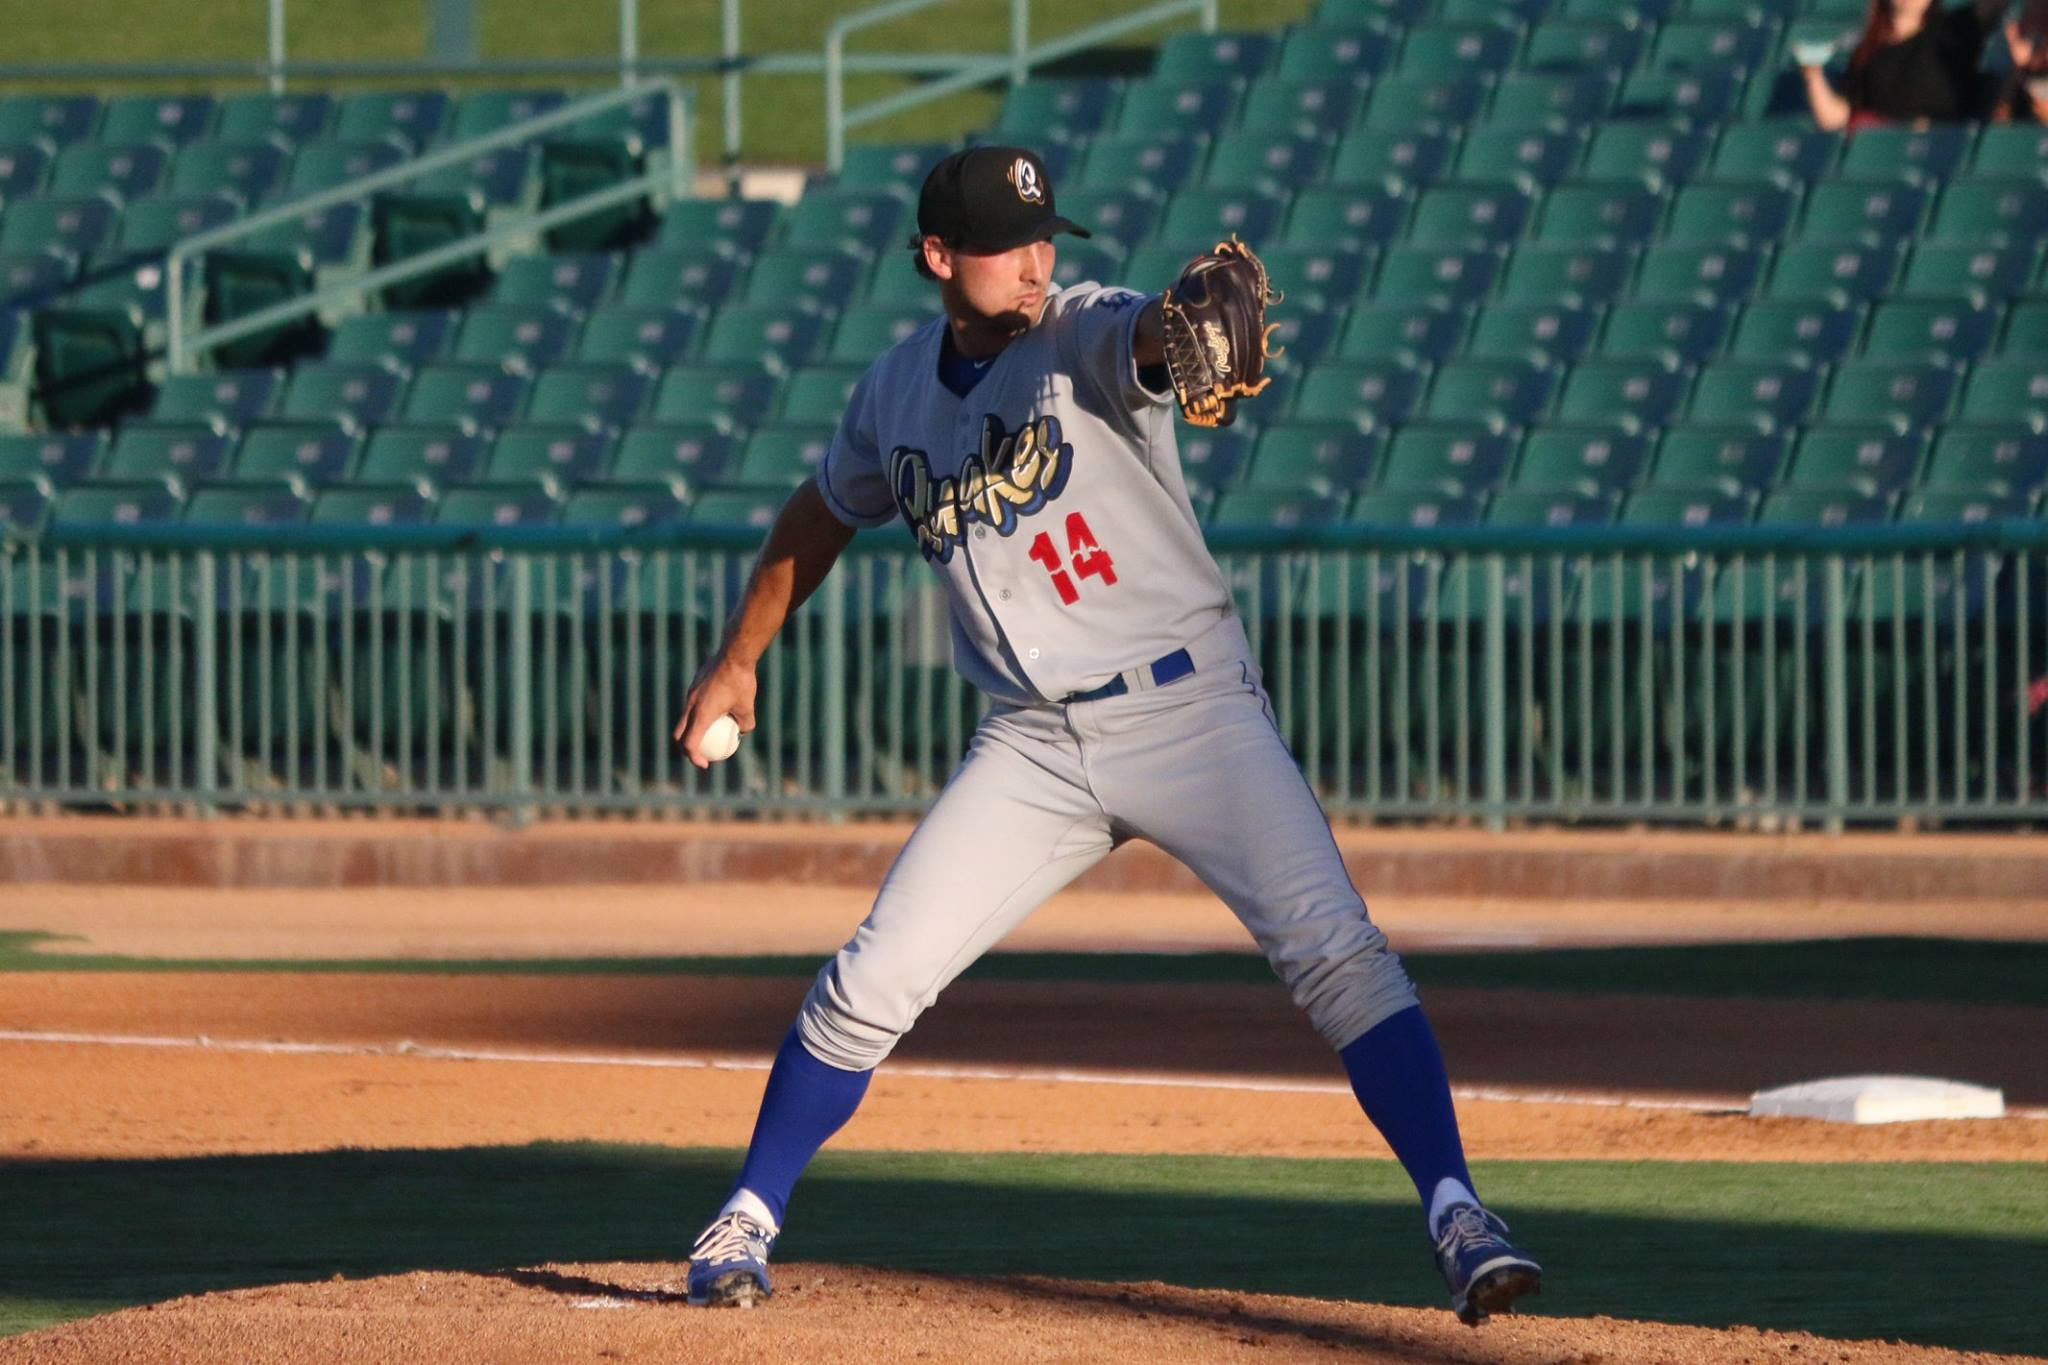 Chase De Jong was a Game 1 starter for the Rancho Cucamong Quakes in their run to the 2015 Cal League championship.